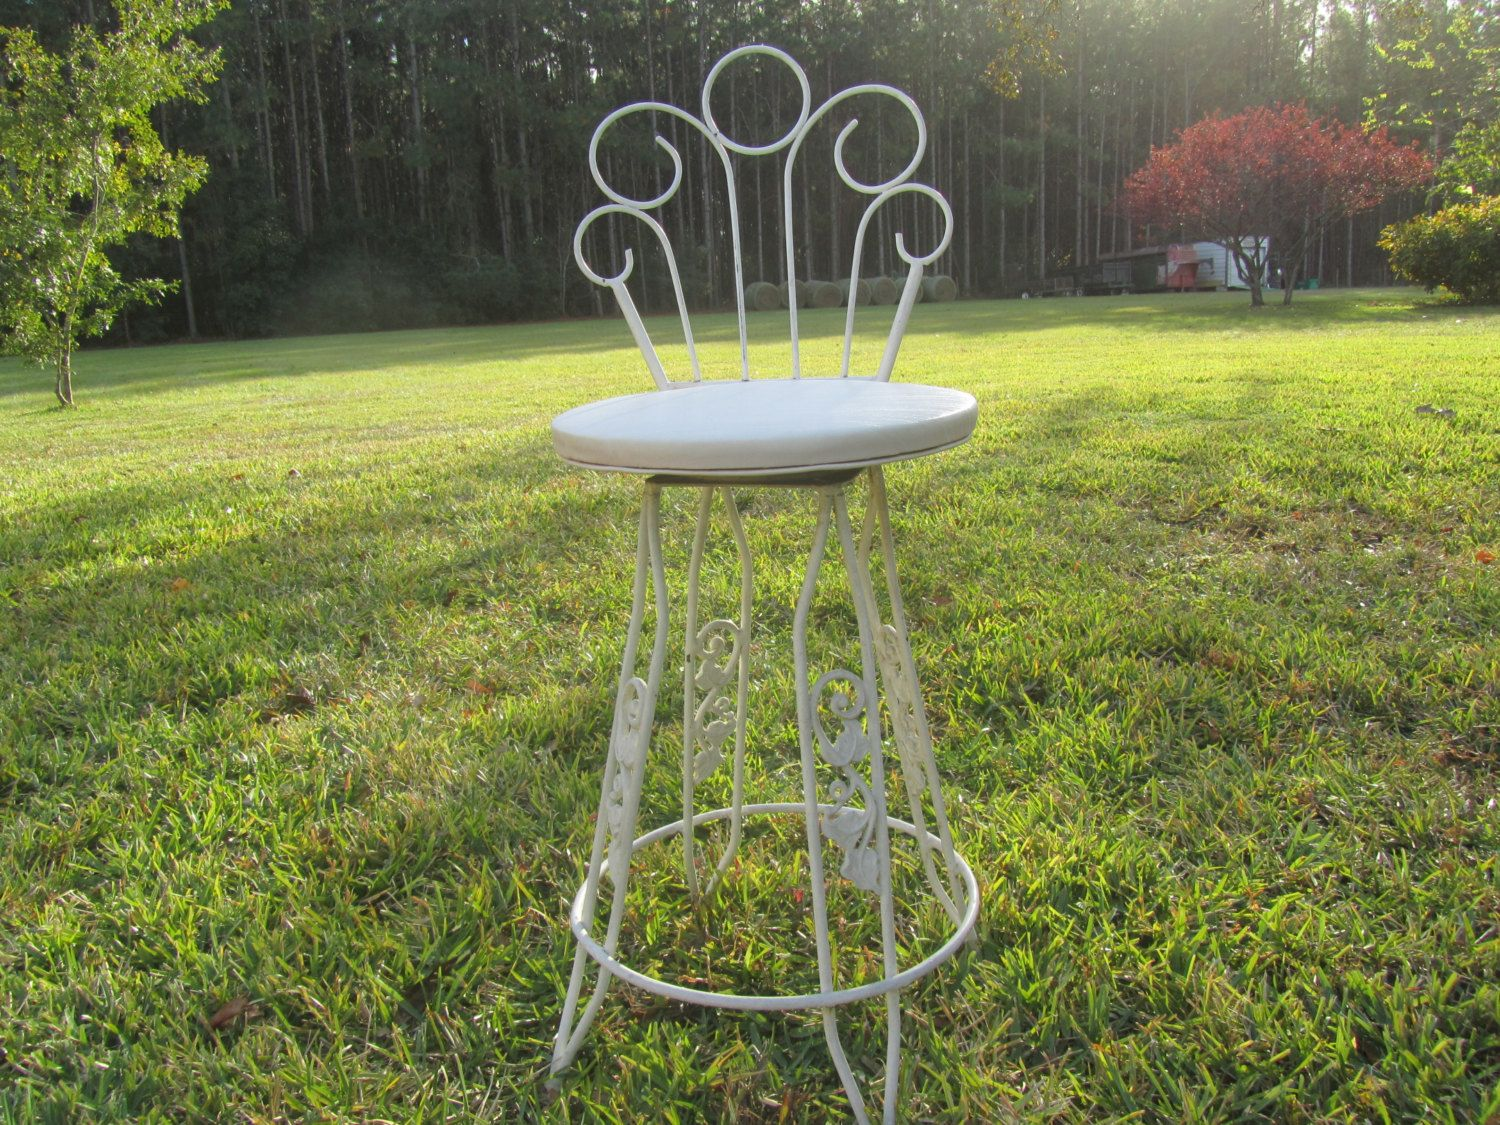 Perfect Vintage Wrought Iron Bar Stool, Retro Chair, Chippy Paint, Metal Chair, Tall